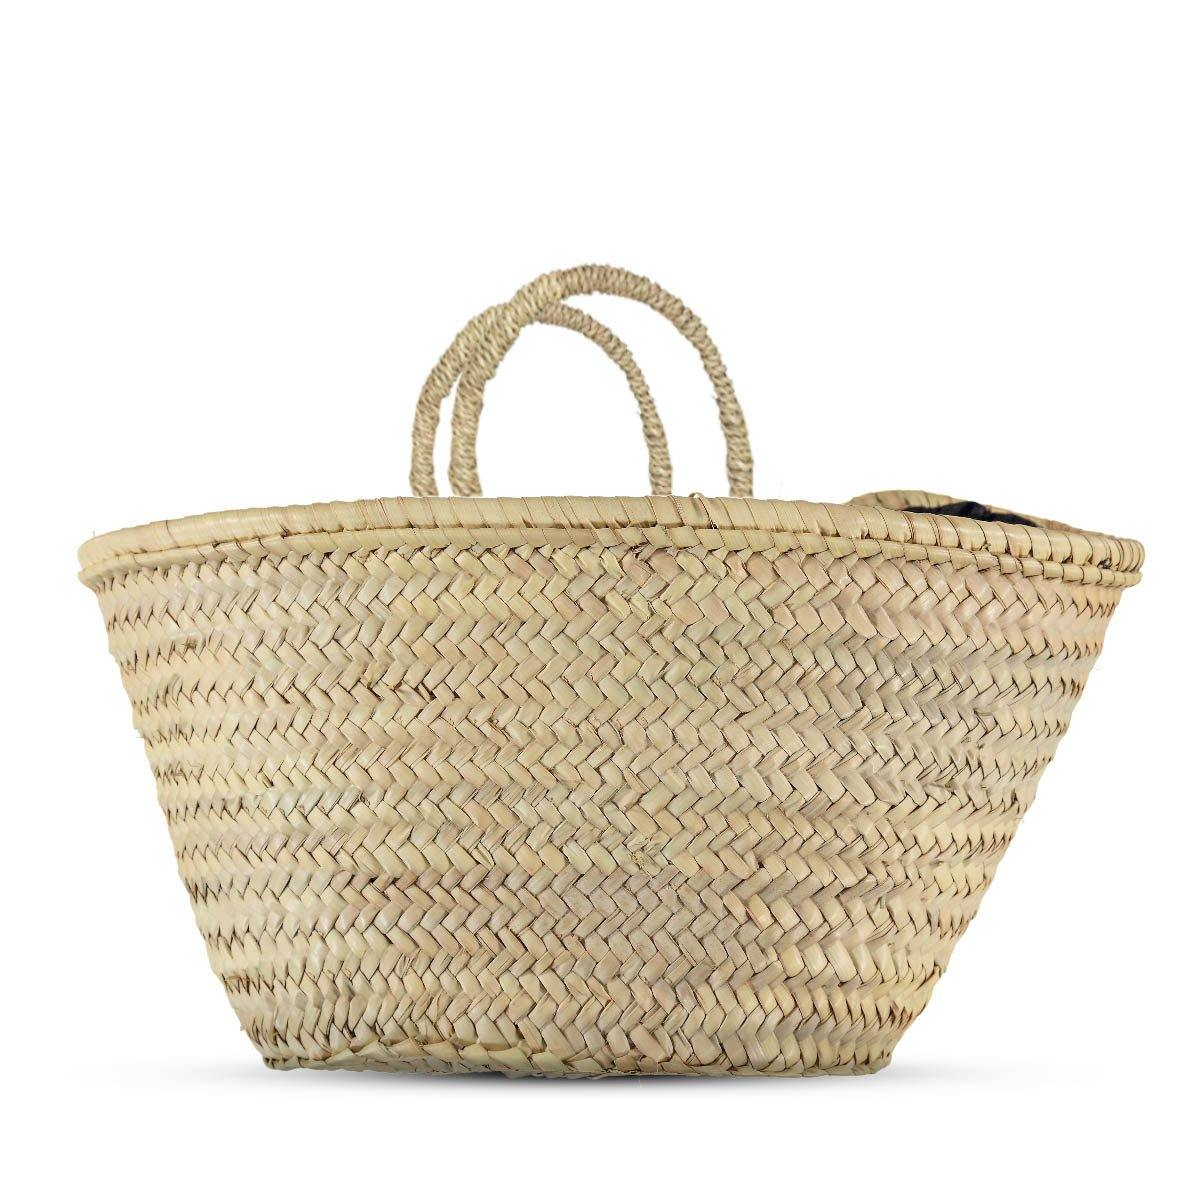 French market bag - Plain - marrakechshopdesign